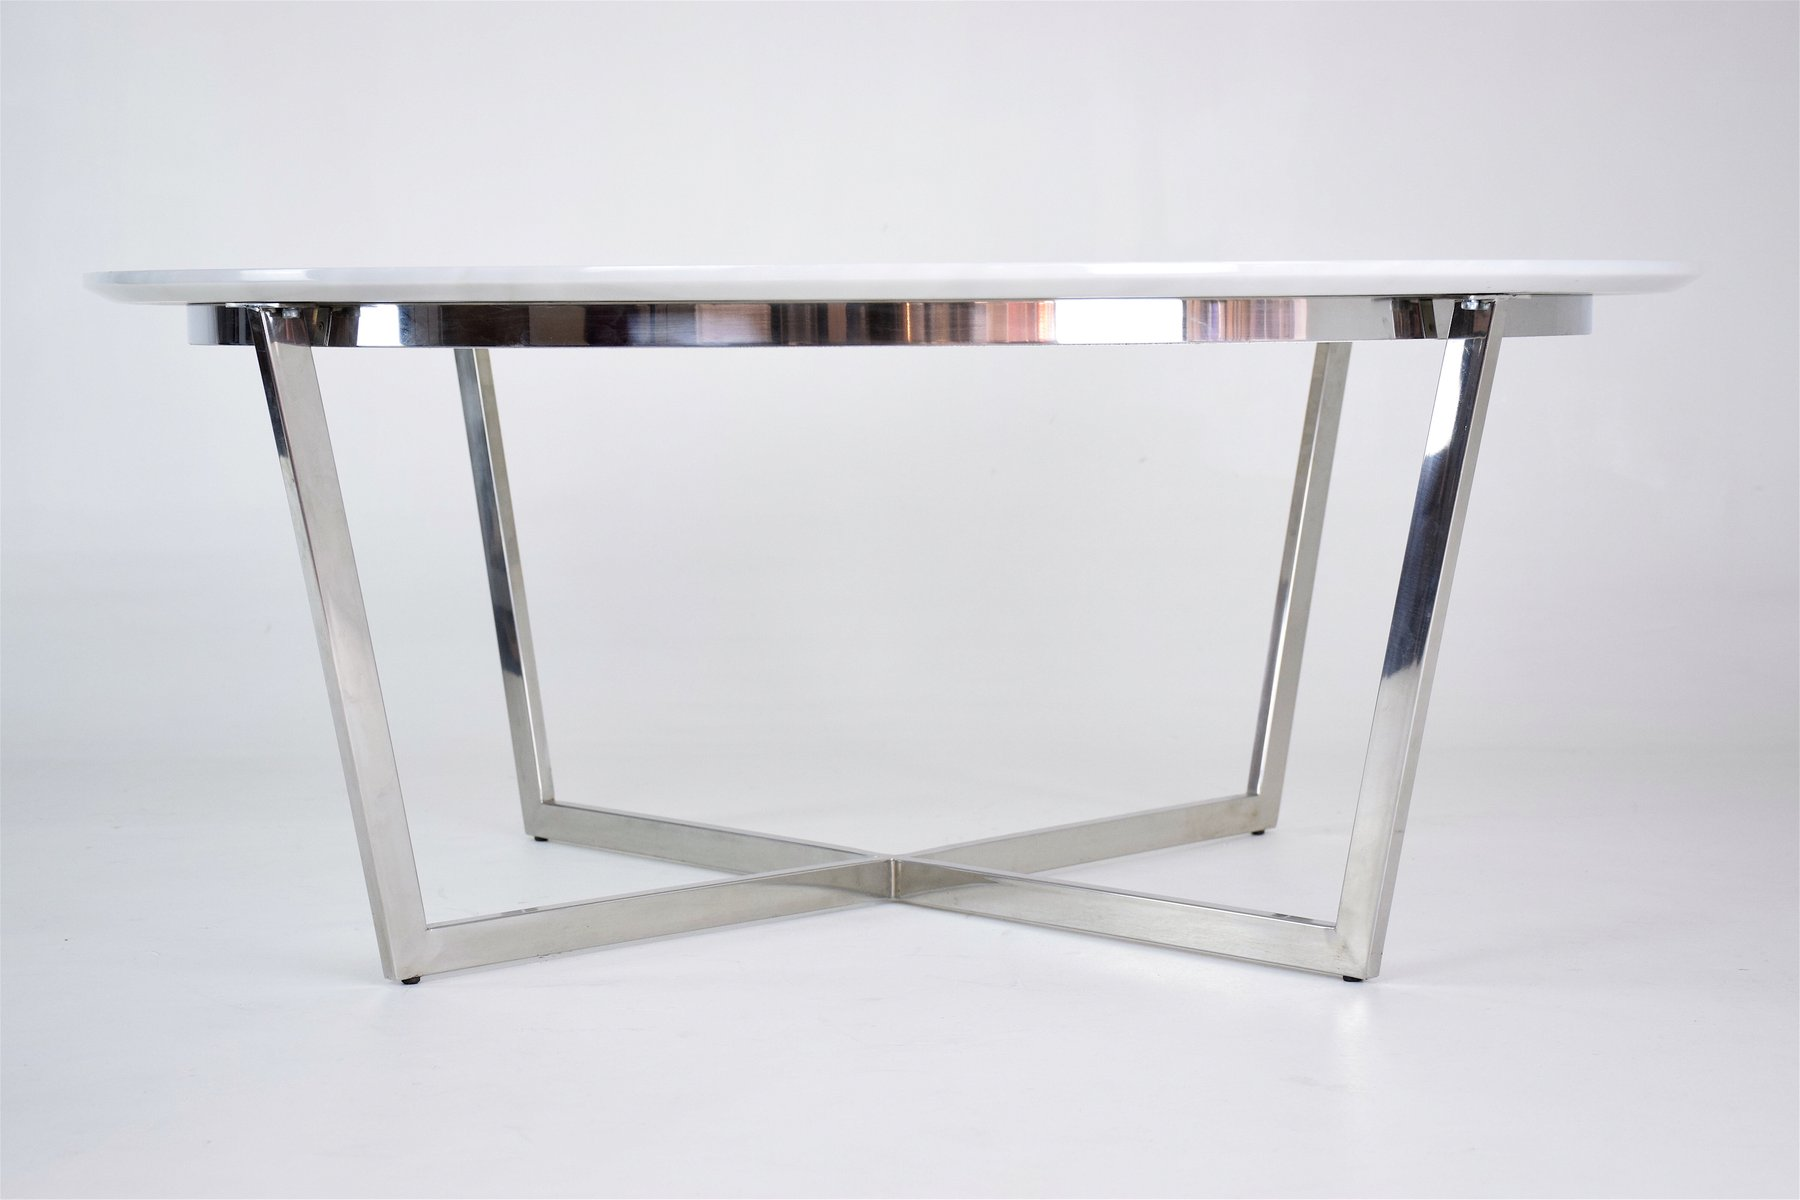 French Coffee Table 1970s 16 Price 3 061 00 Regular 858